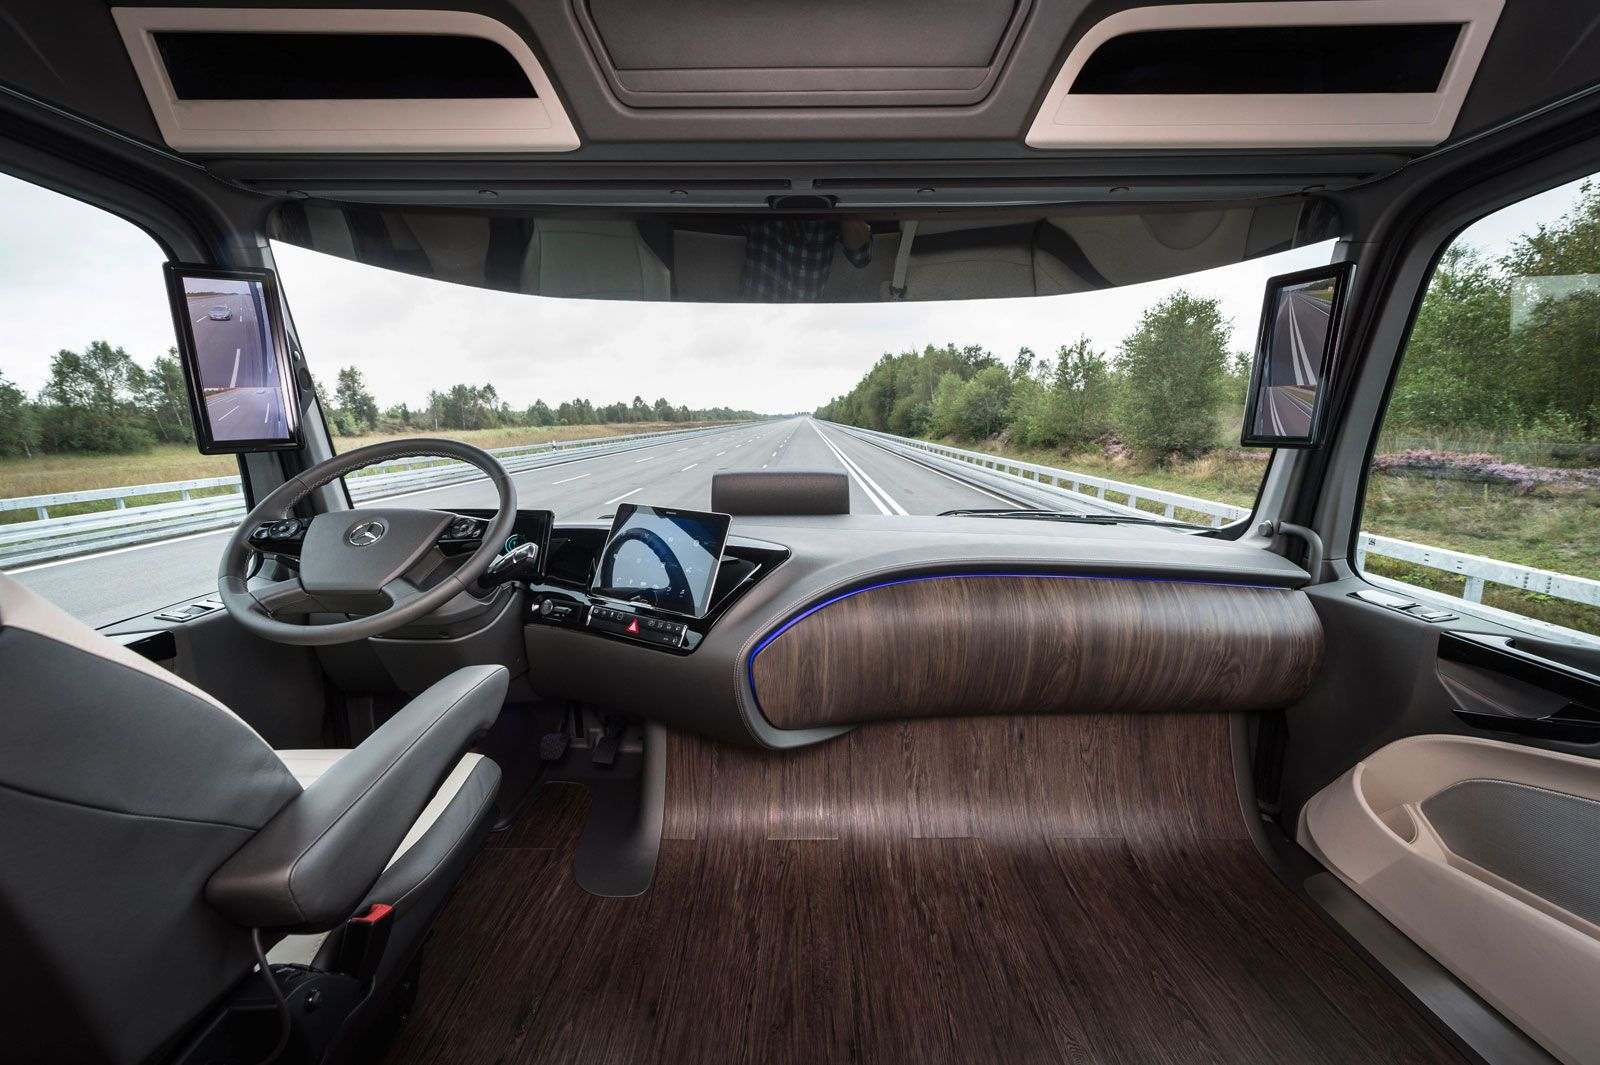 Mercedes Benz Future Truck 2025 Concept Interior Two Tablets